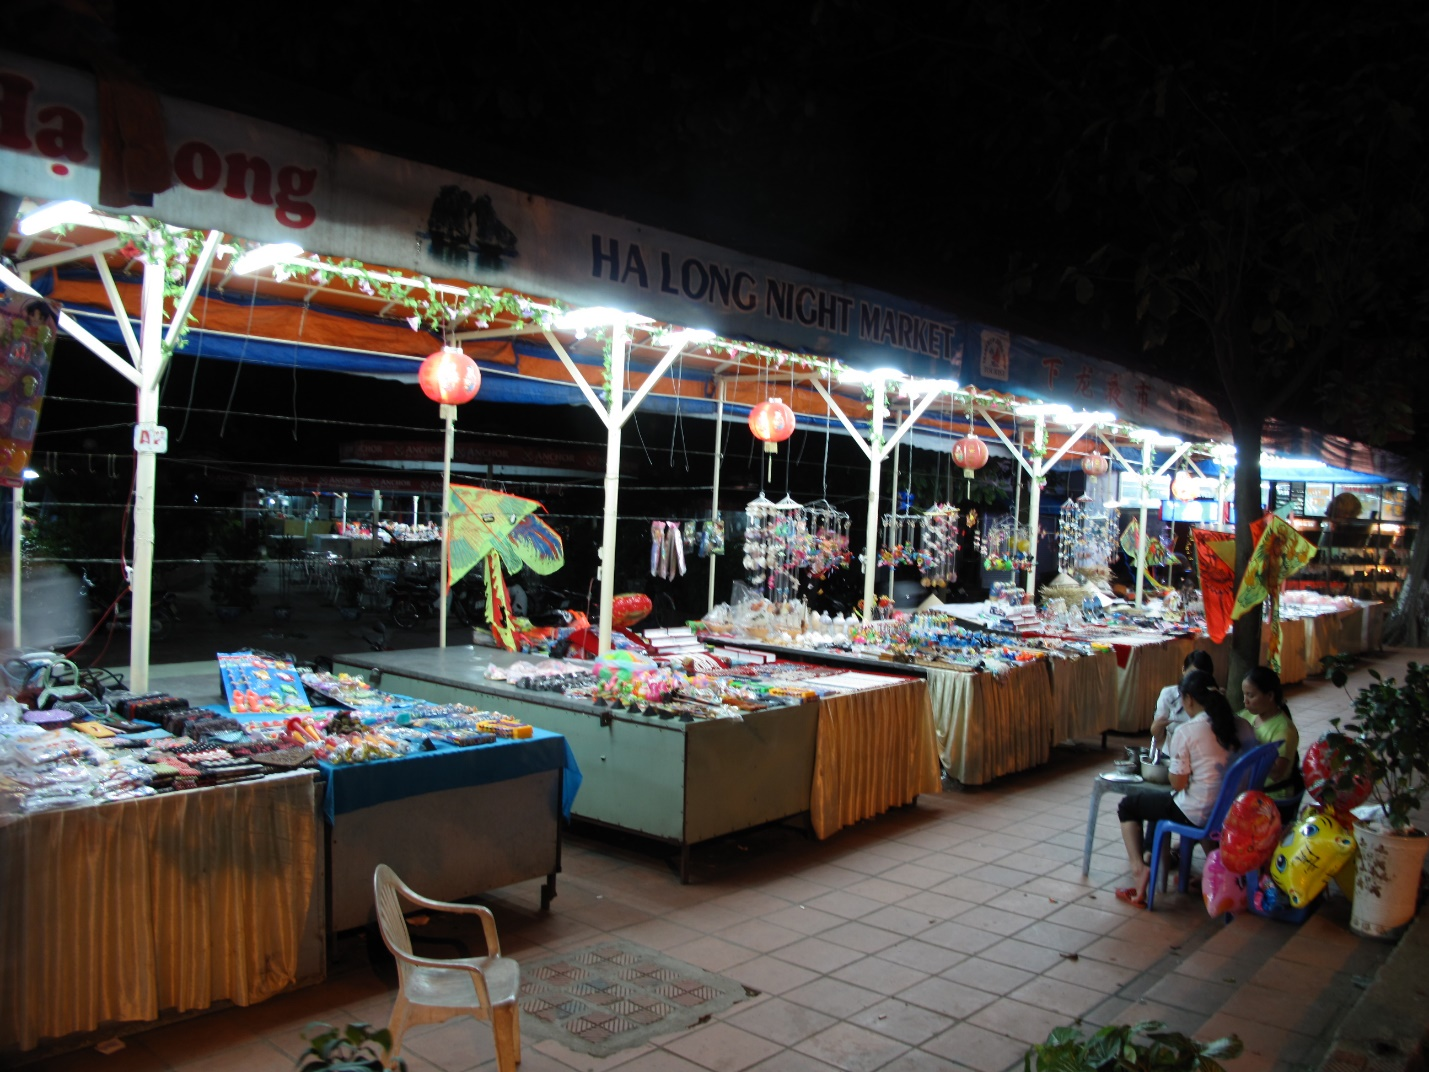 A corner of Halong night market